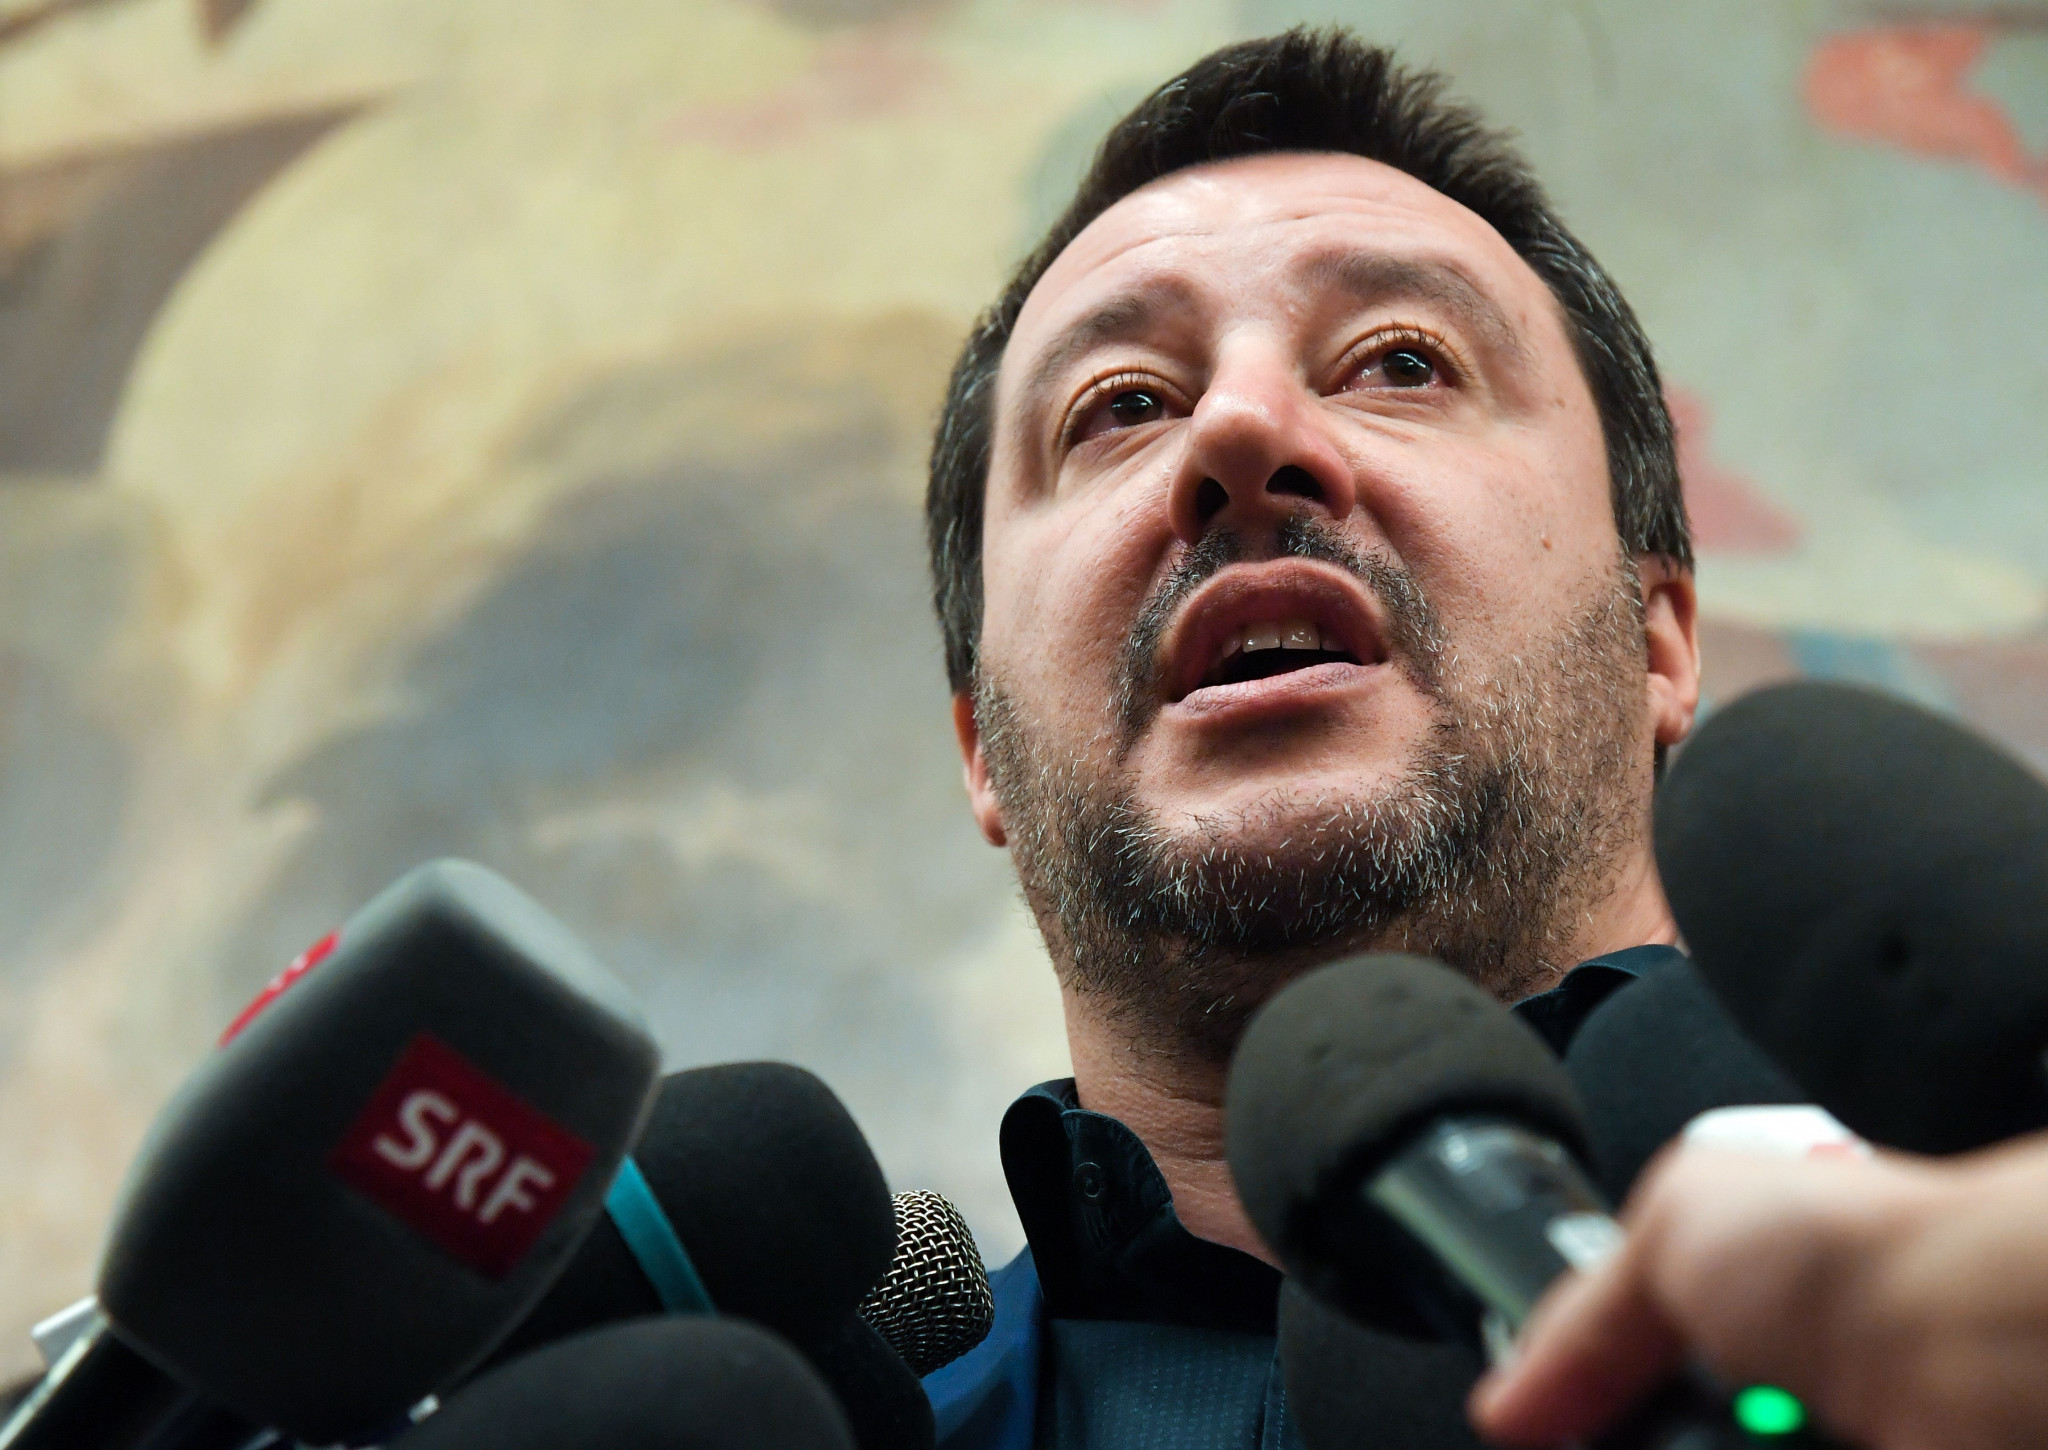 Deputy Prime Minister and Interior Minister Matteo Salvini has claimed the Italian Government must support the Milan and Cortina d'Ampezzo bid for the 2026 Olympic Games ©Getty Images